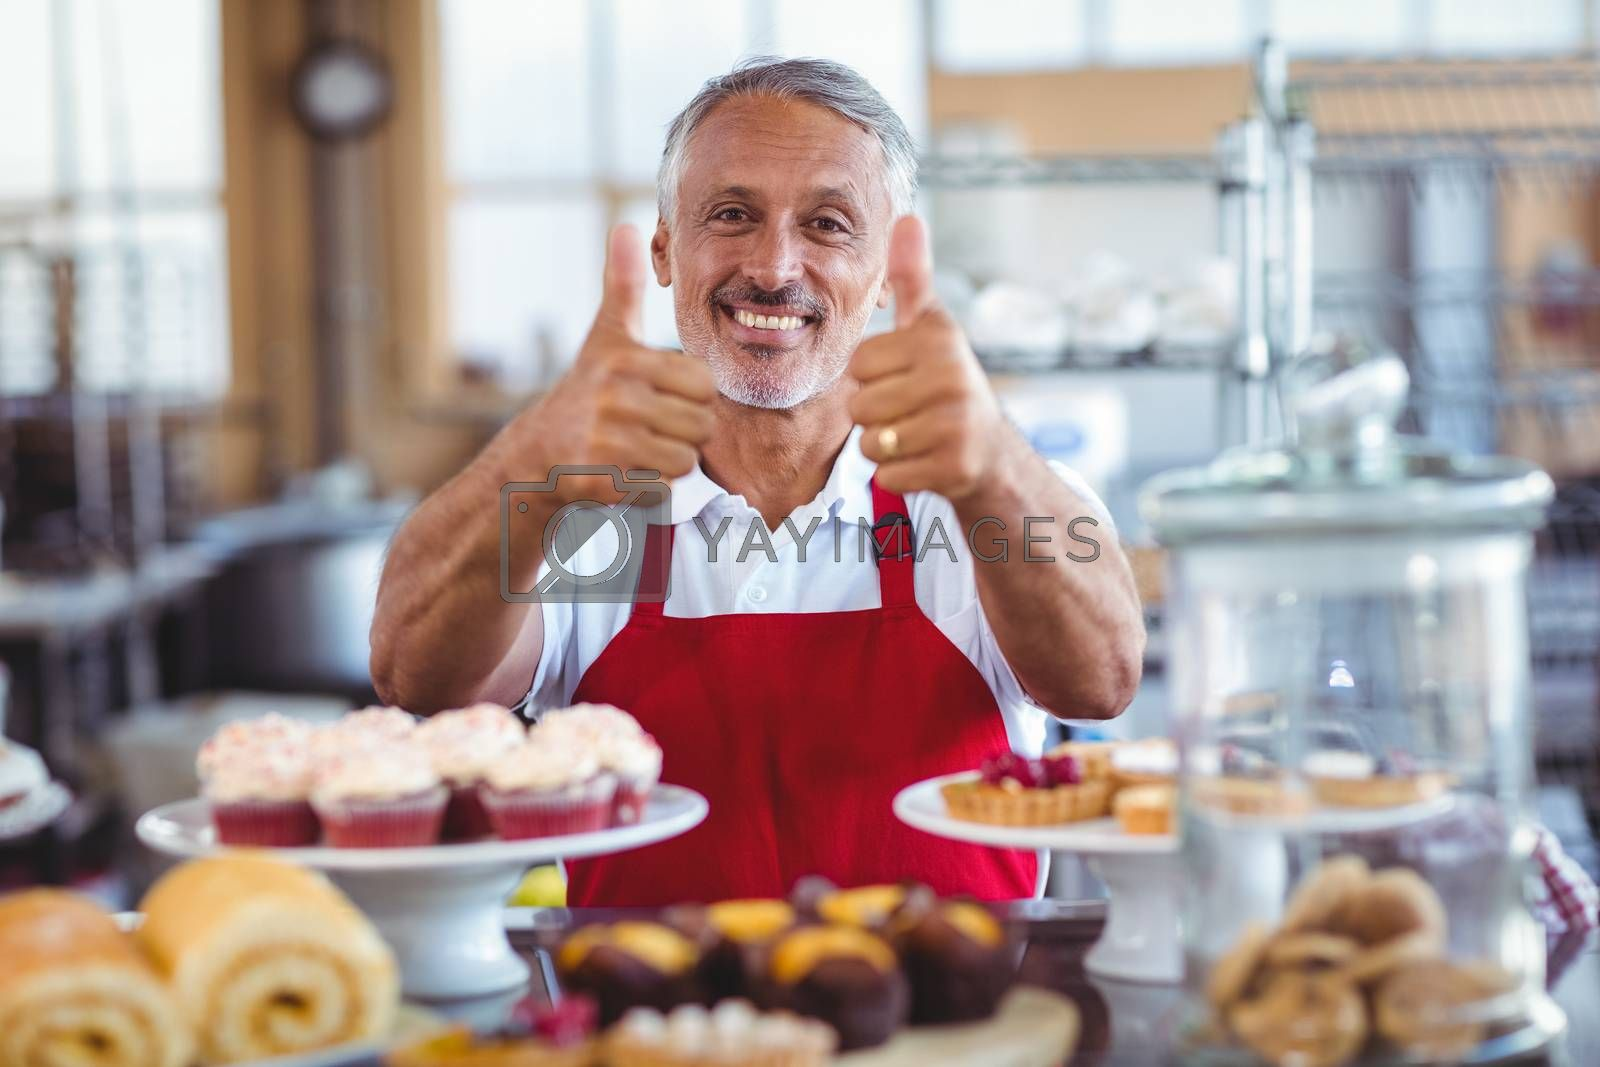 Royalty free image of Happy barista looking at camera and gesturing thumbs up by Wavebreakmedia